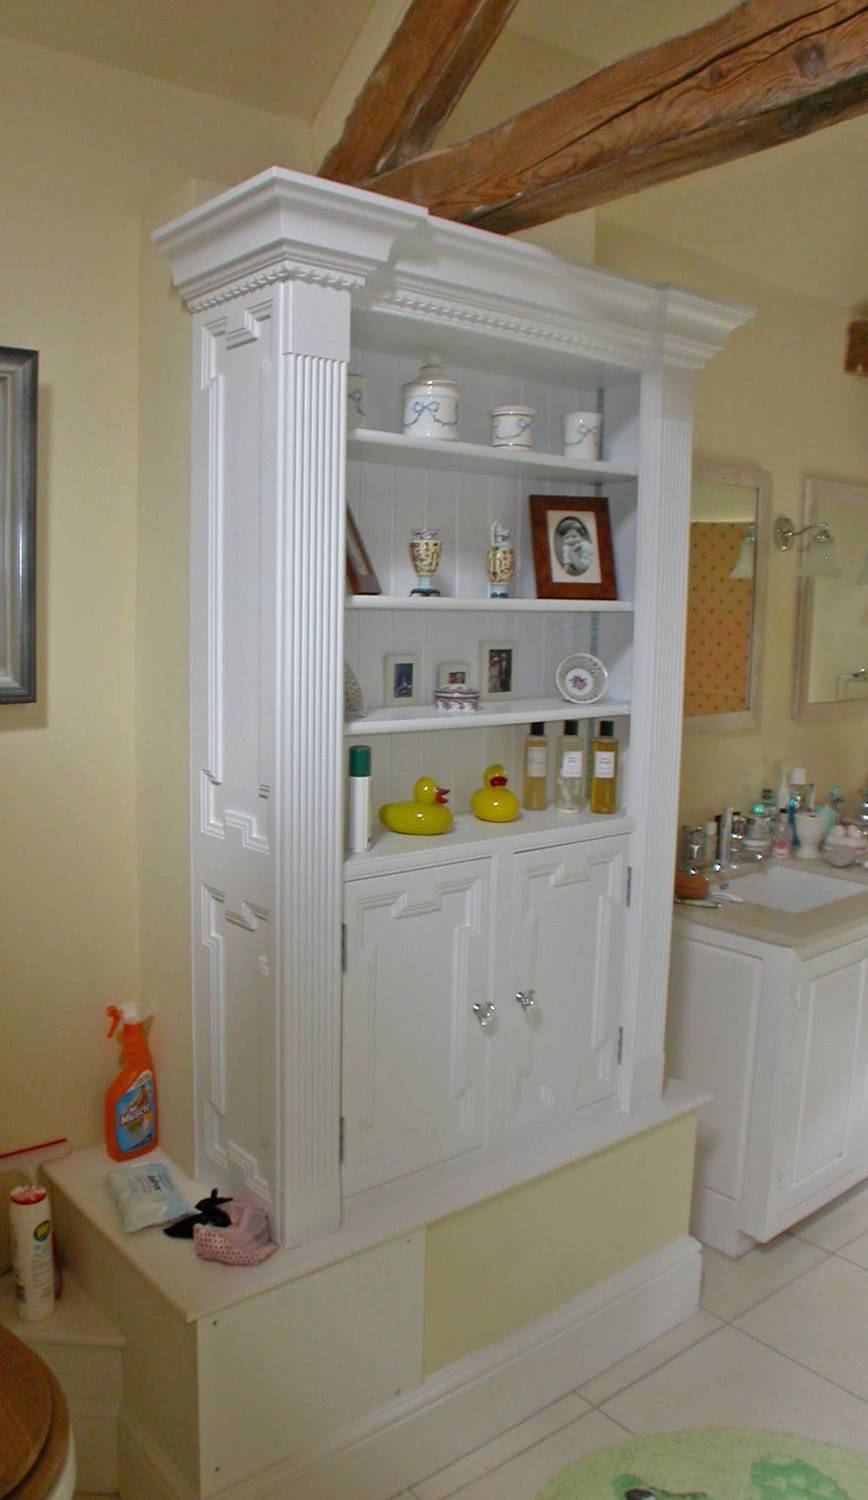 Bespoke fitted bathroom cabinets with open shelves